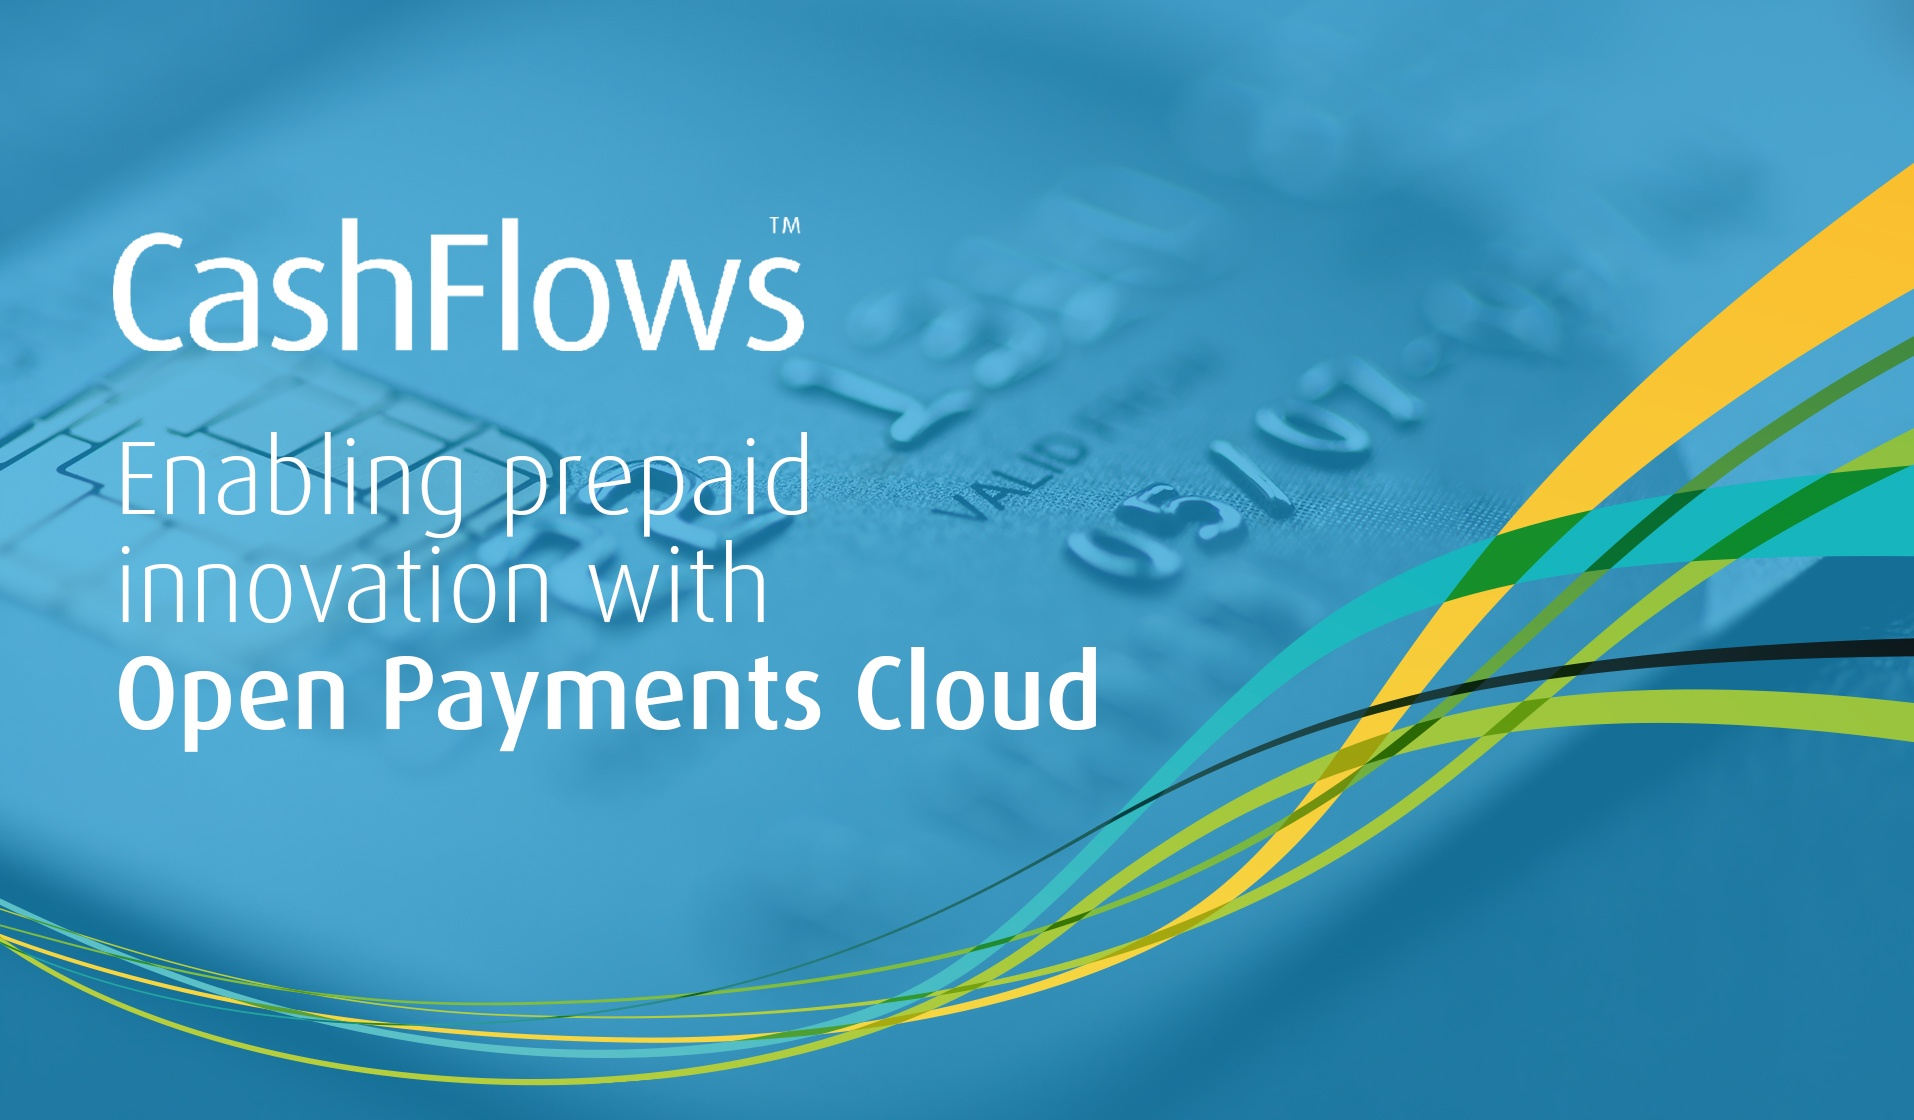 Enabling prepaid innovation with Open Payments Cloud